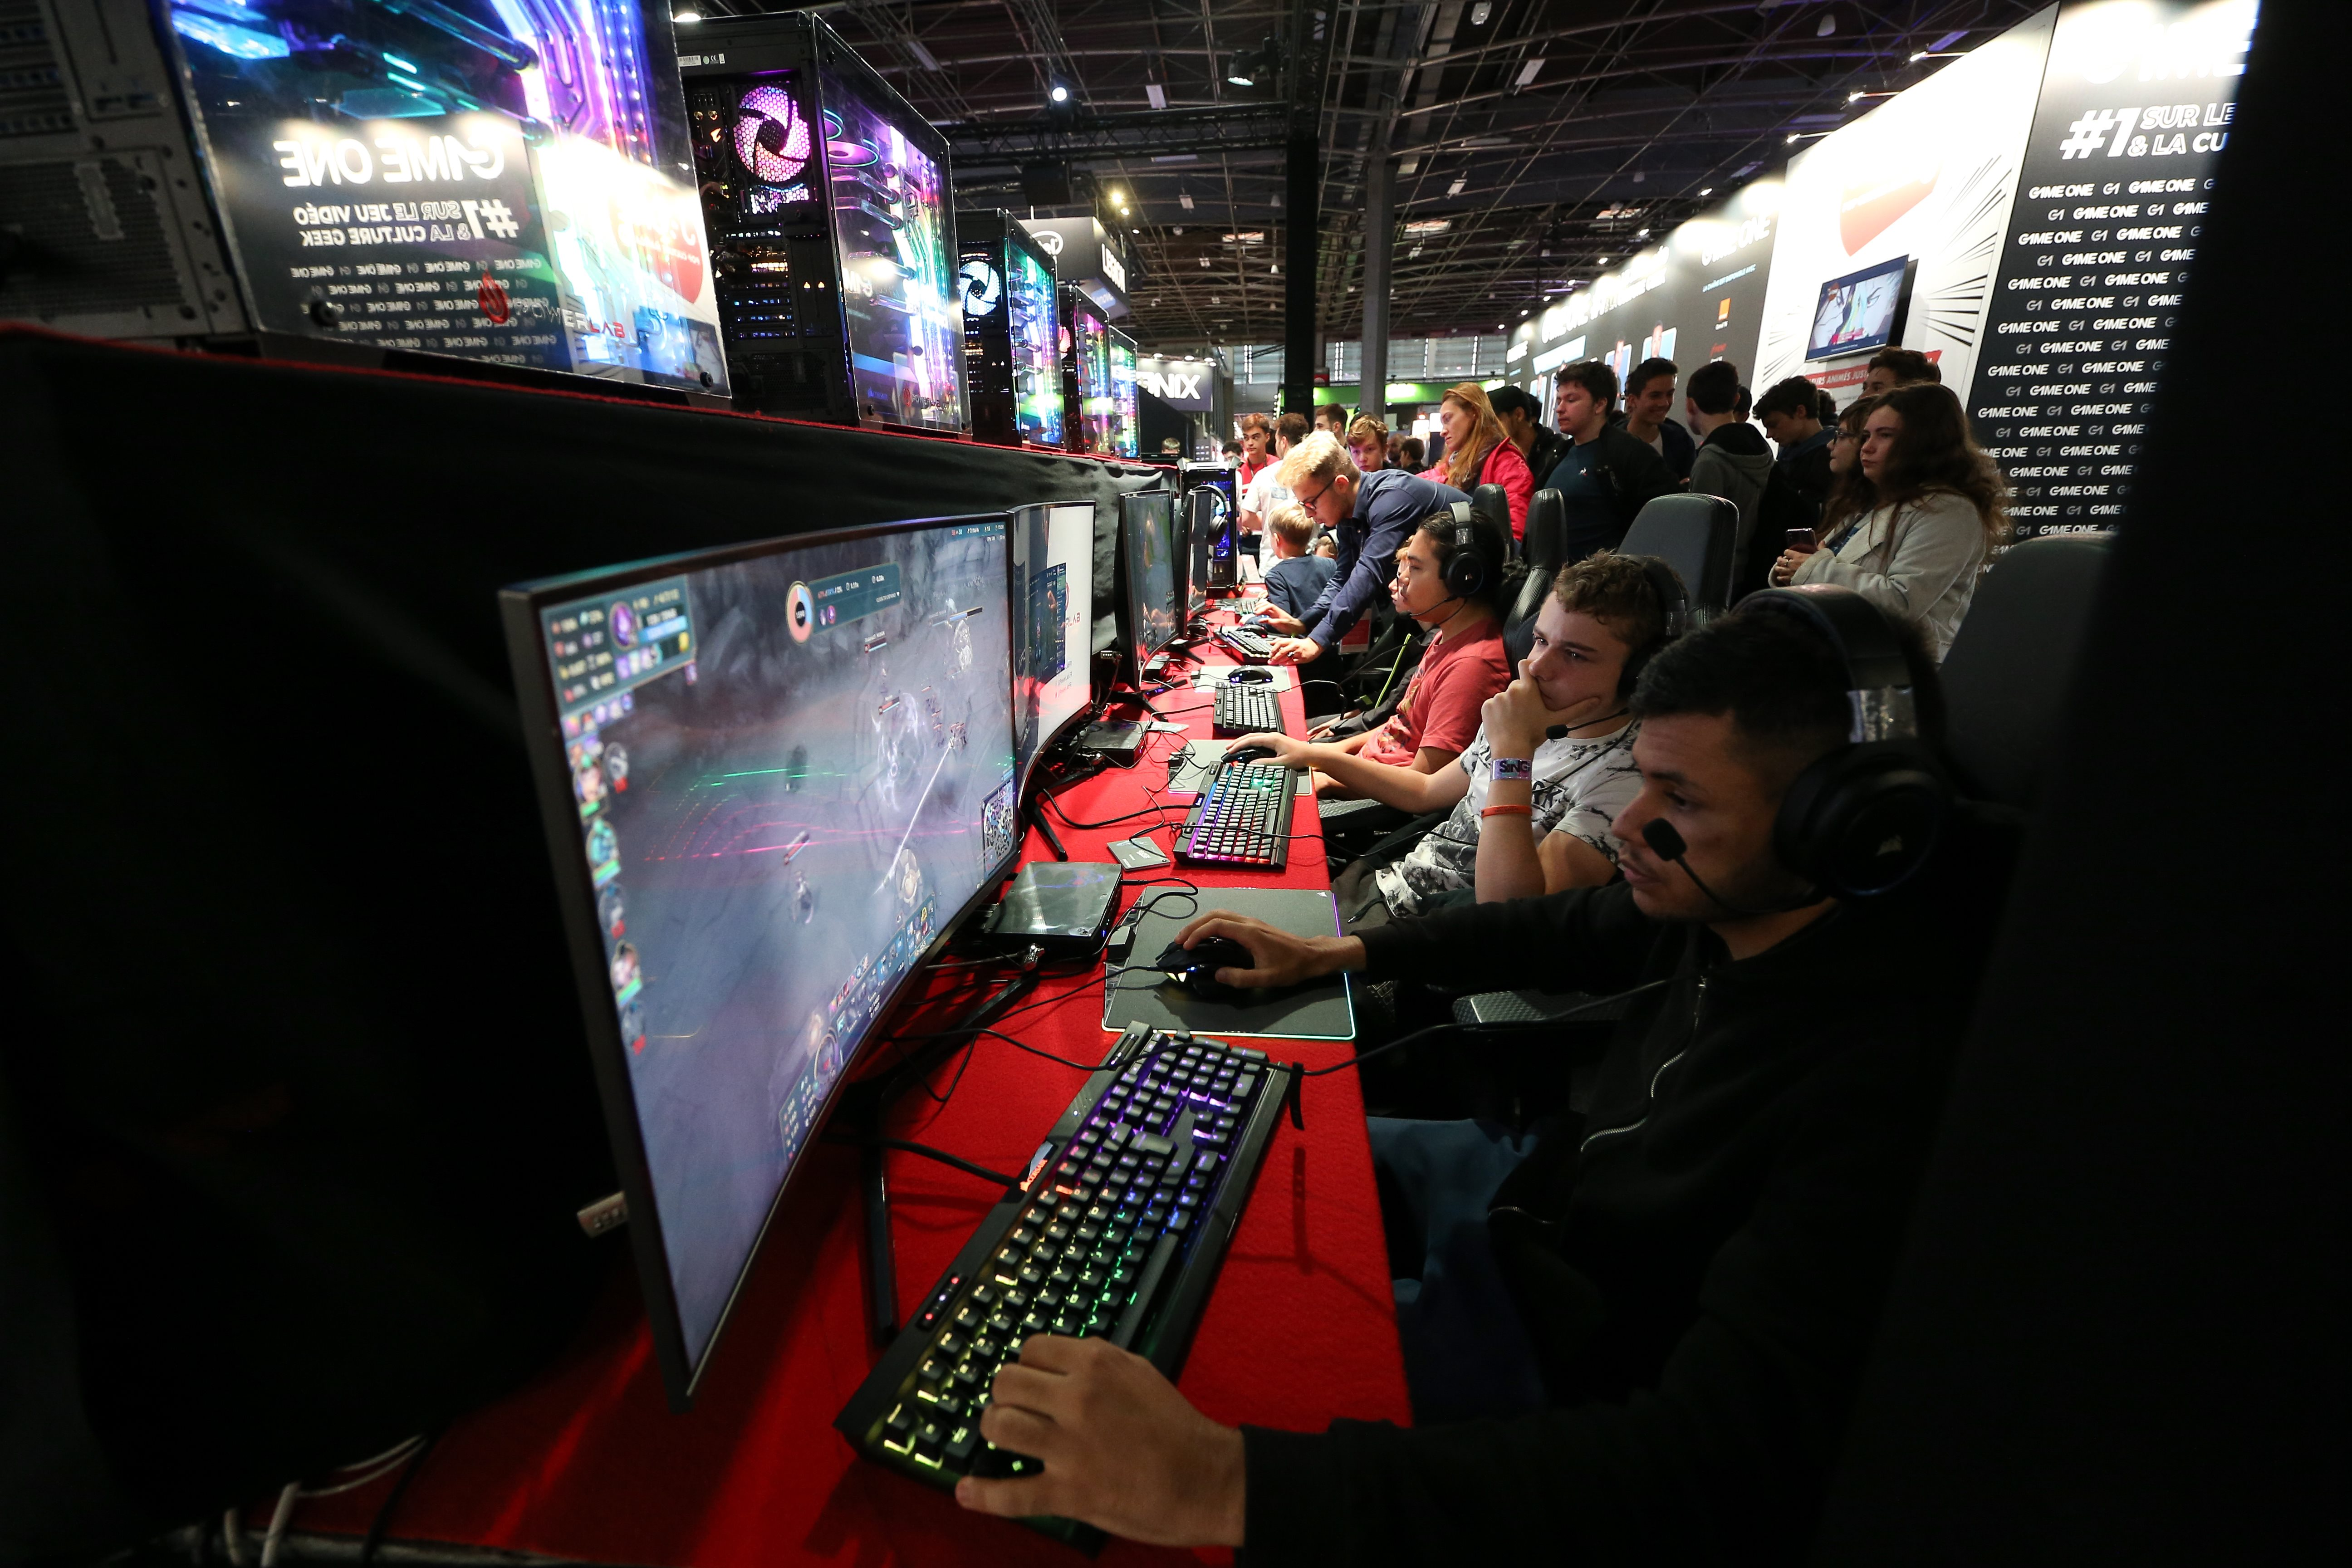 Picture taken on October 30, 2019, during the 10th edition of the Paris Games Week, a video game show in France organized by the S.E.L.L. (Union of Publishers of Leisure Software). Ranked in the top 3 international video gaming shows, this annual event wel